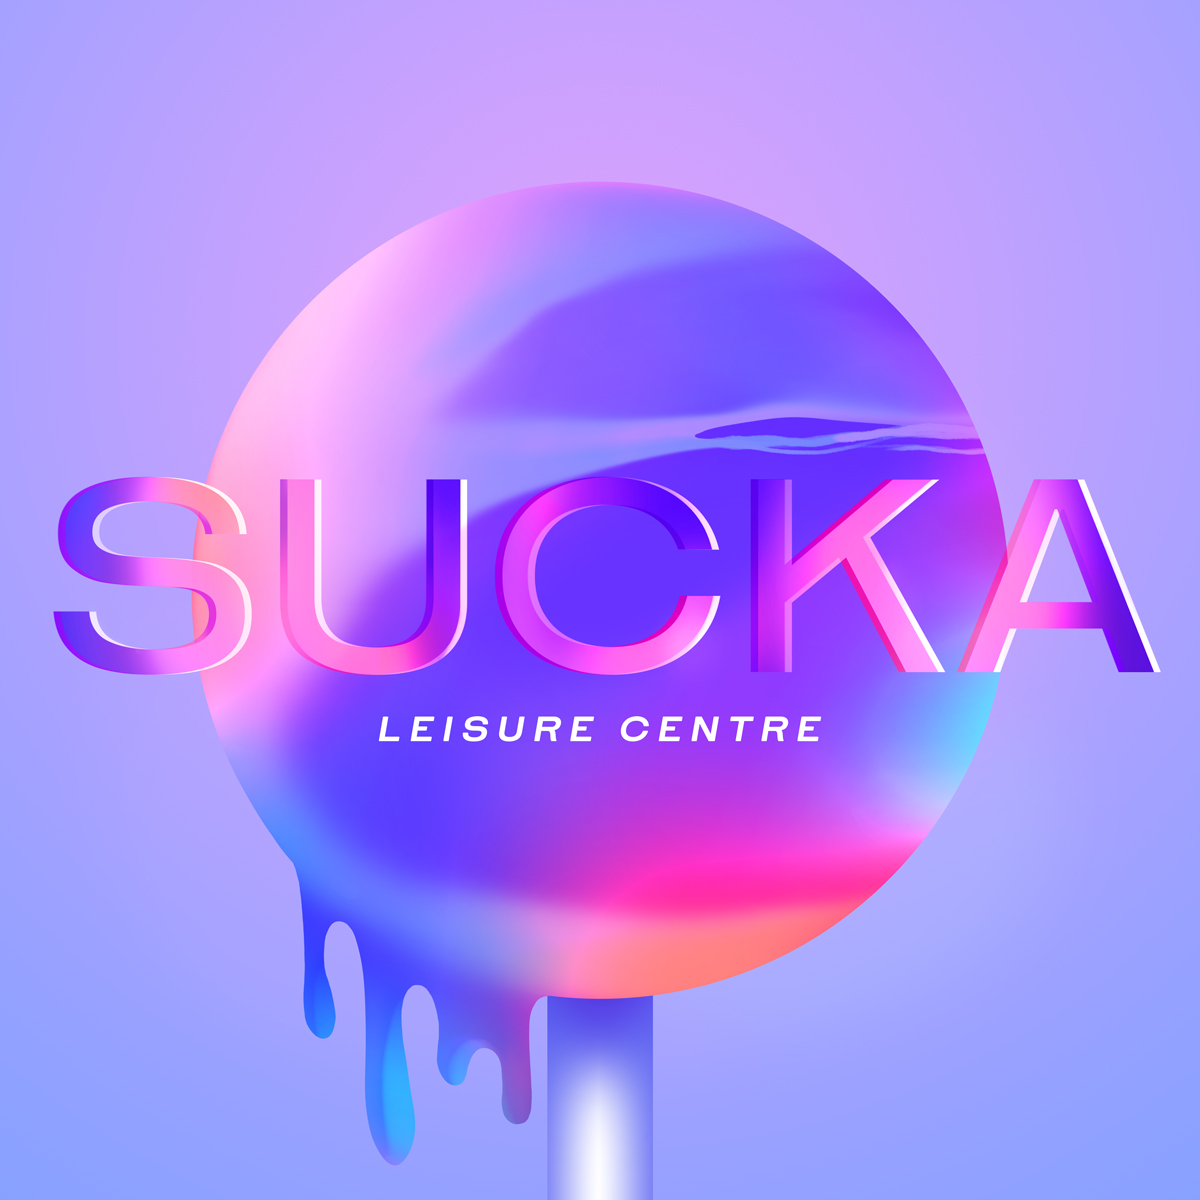 Leisure Centre - Sucka